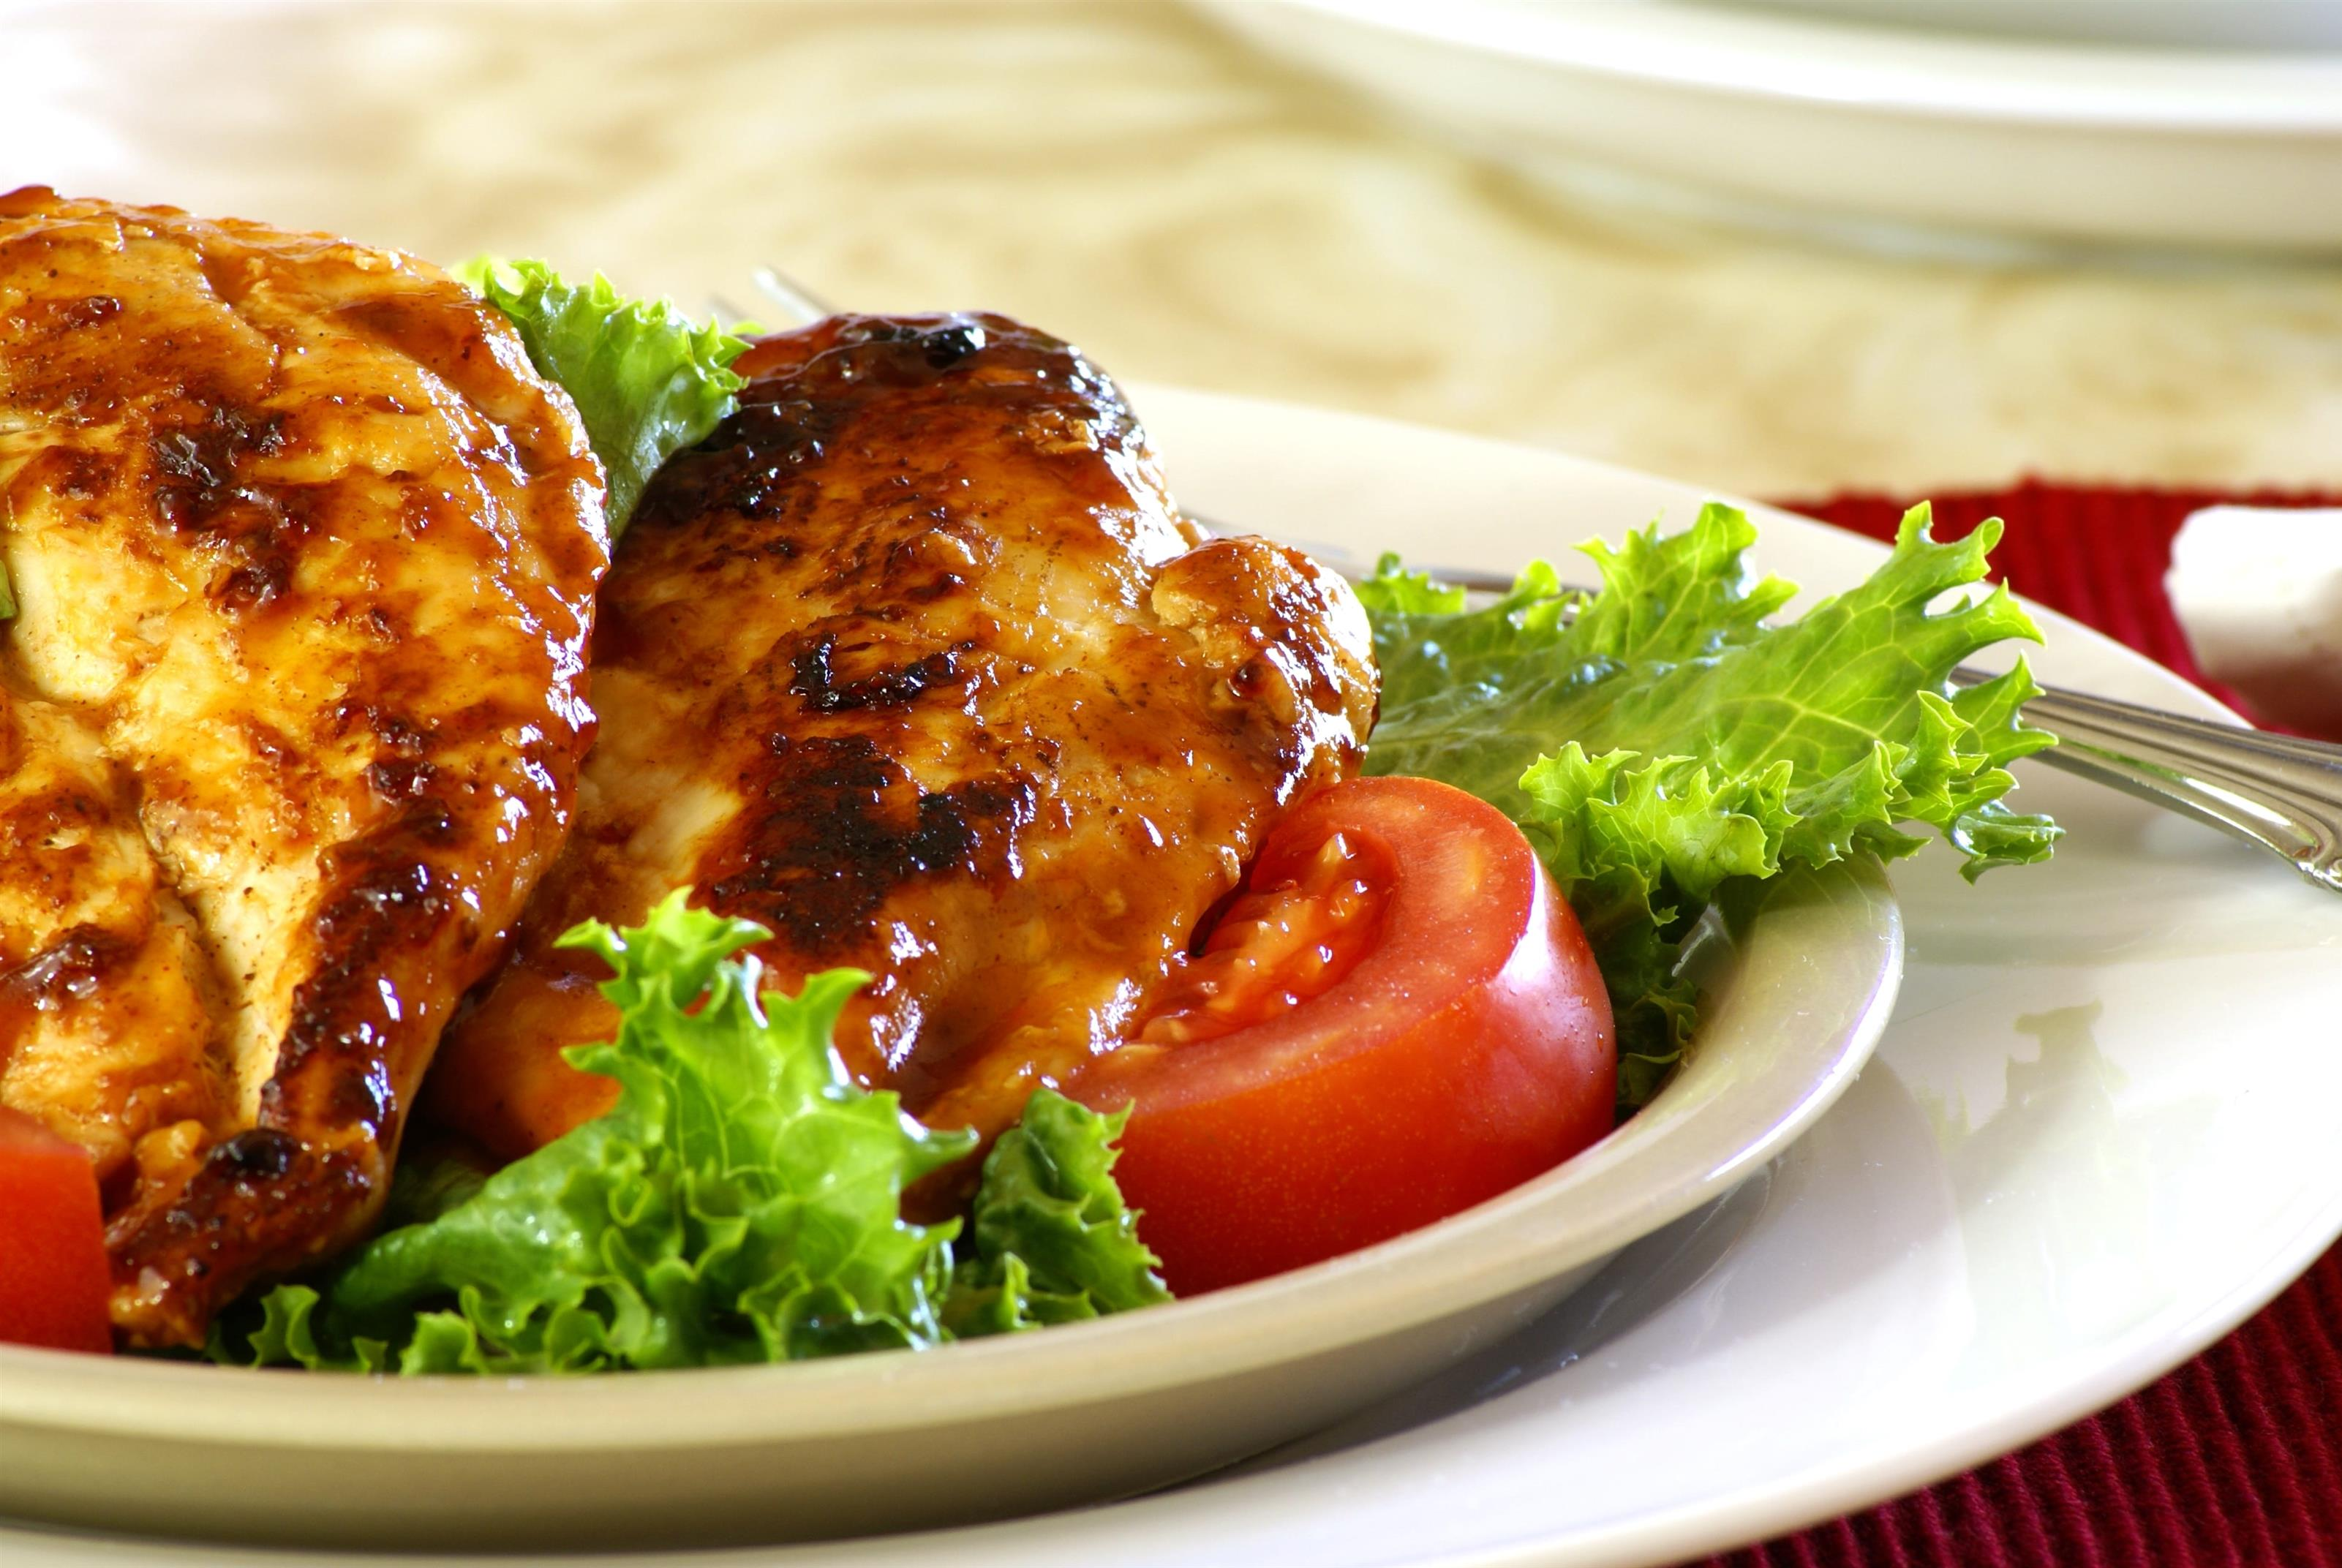 BBQ chicken over lettuce and tomato